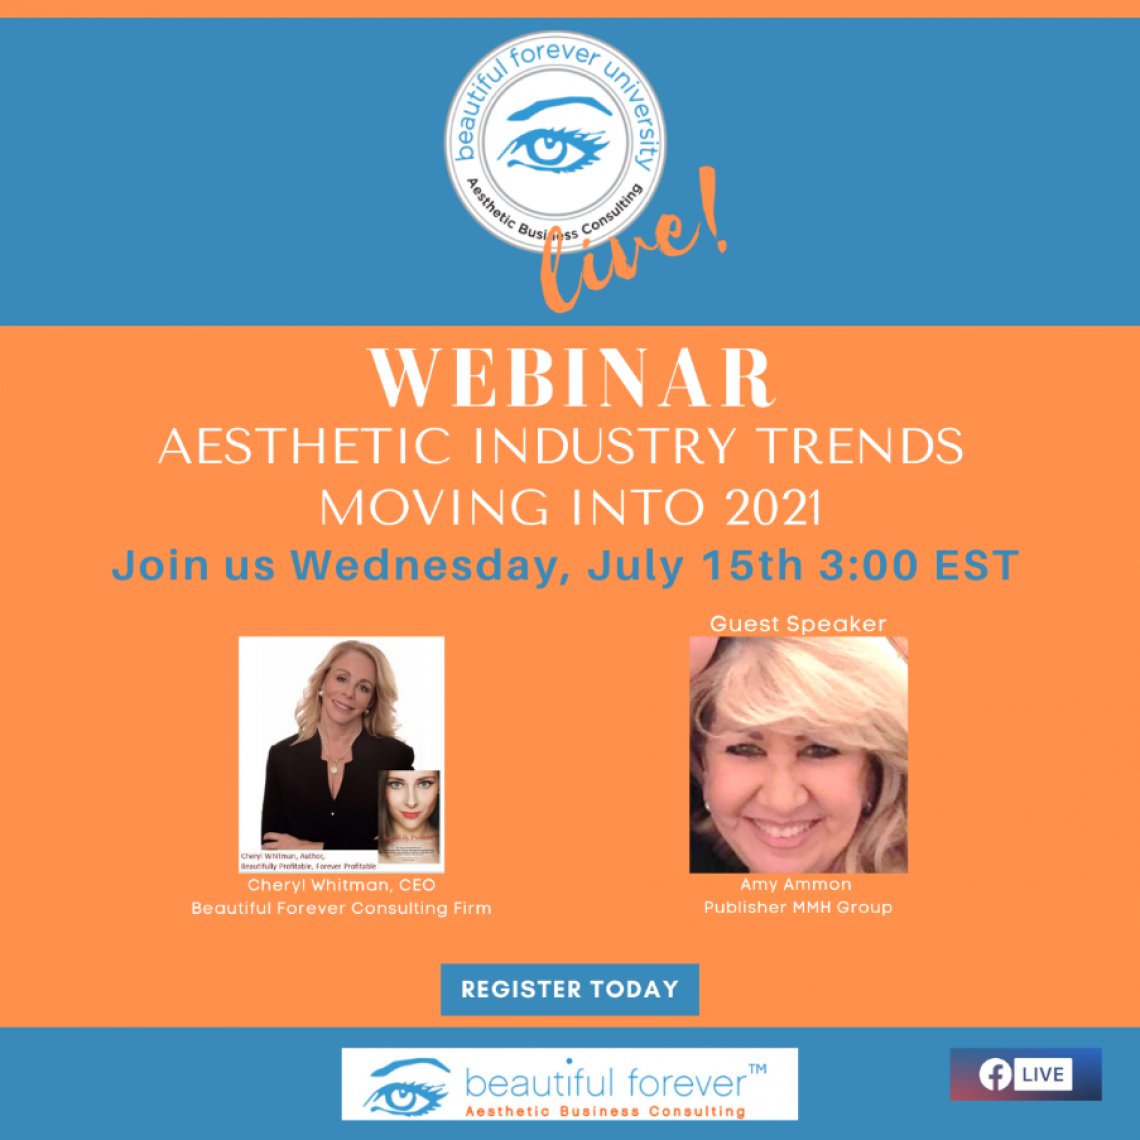 Aesthetic Industry Trends - Moving into 2021 with Cheryl Whitman and Amy Ammon, Publisher MMH Group